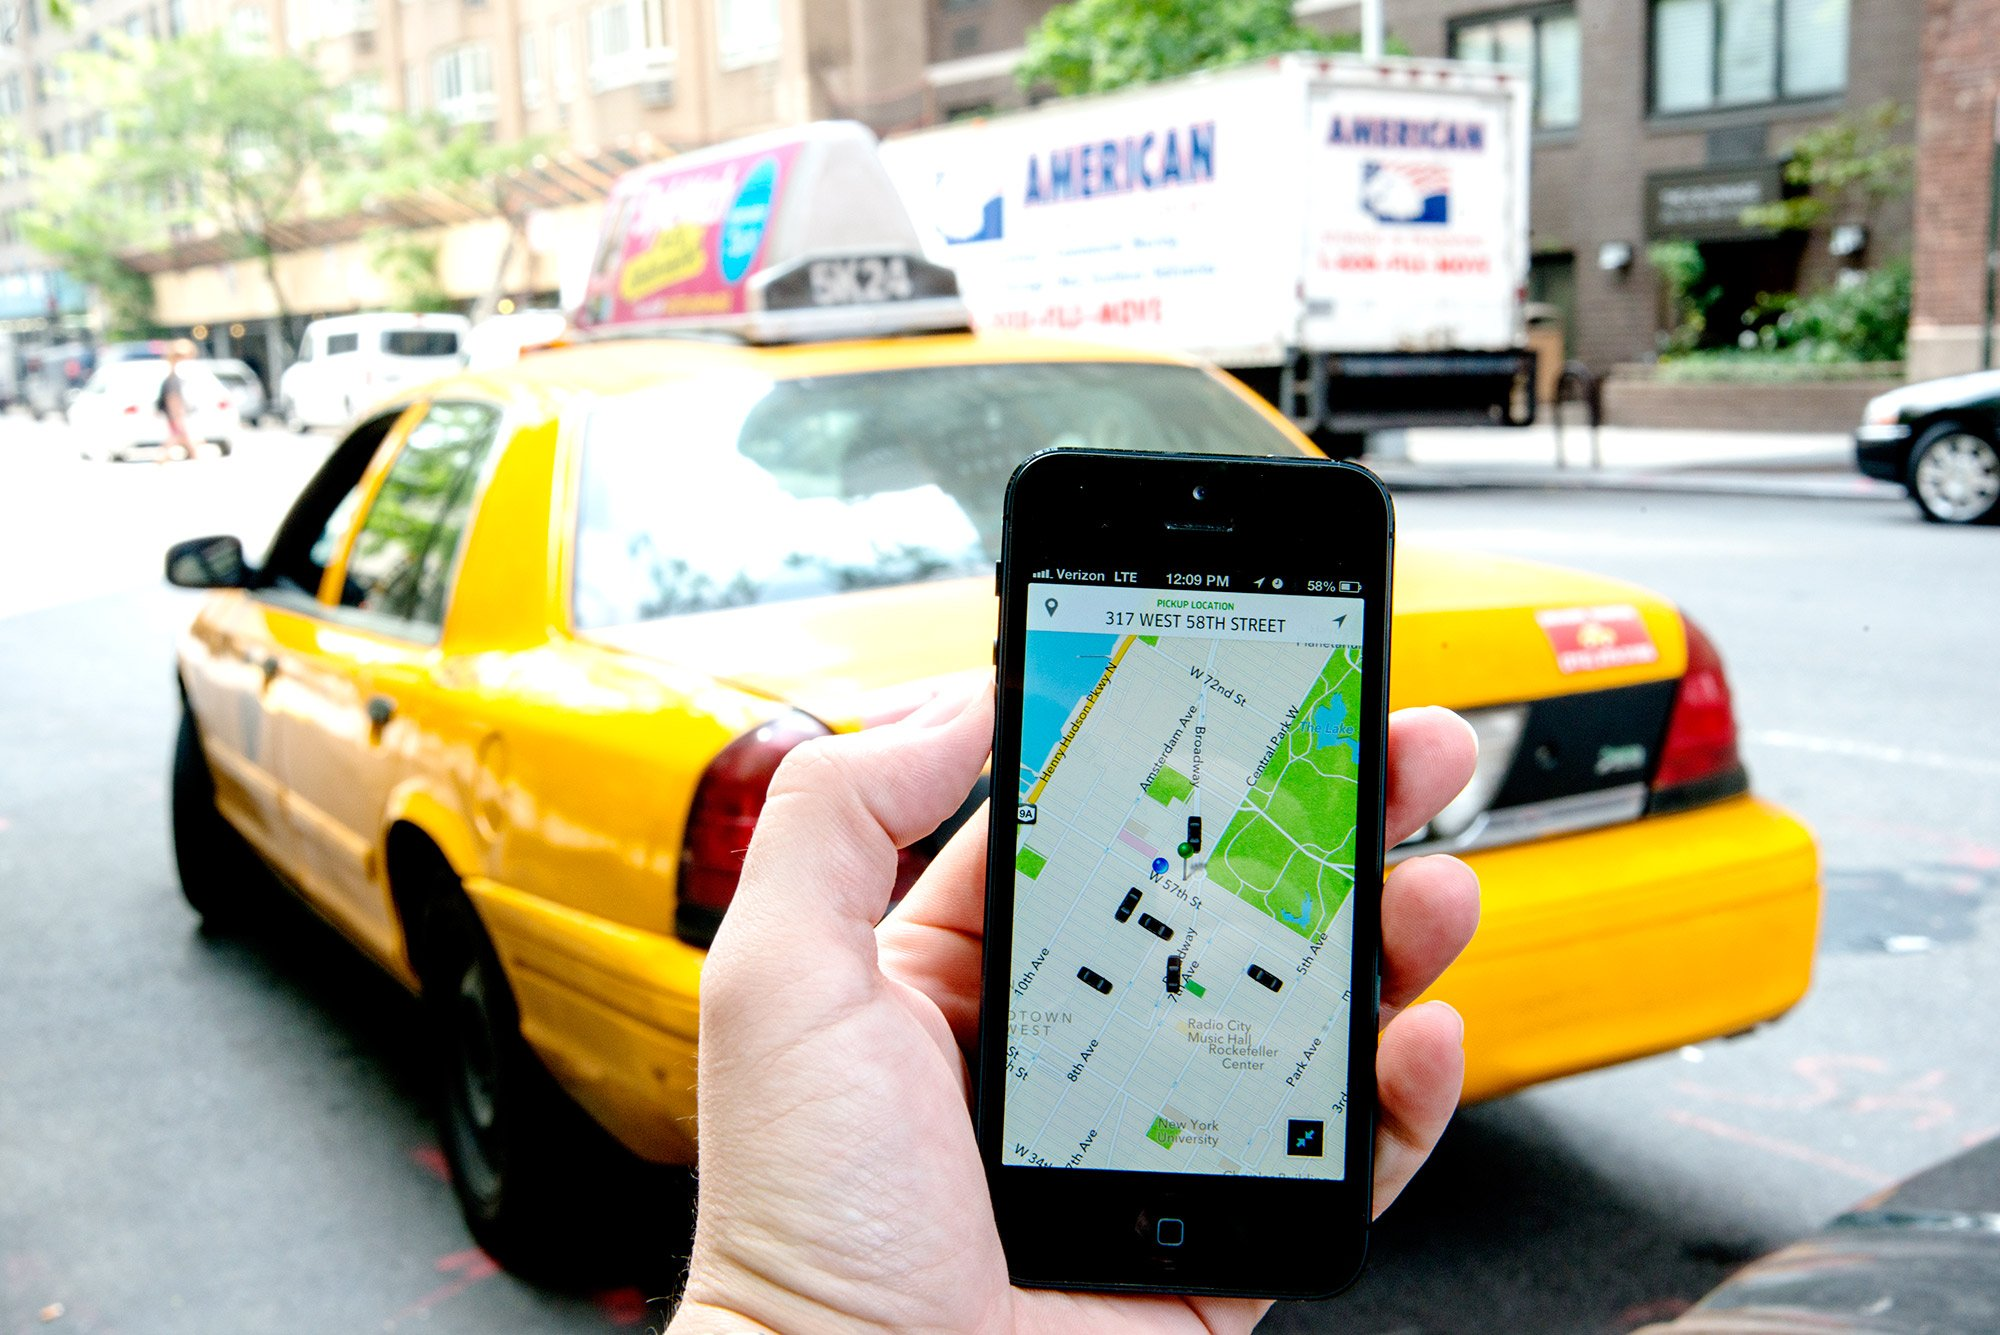 Uber, a ride sharing service, as seen through their iOS app near Central Park, New York, New York. A taxi is seen in the background. (Photo: CNN)